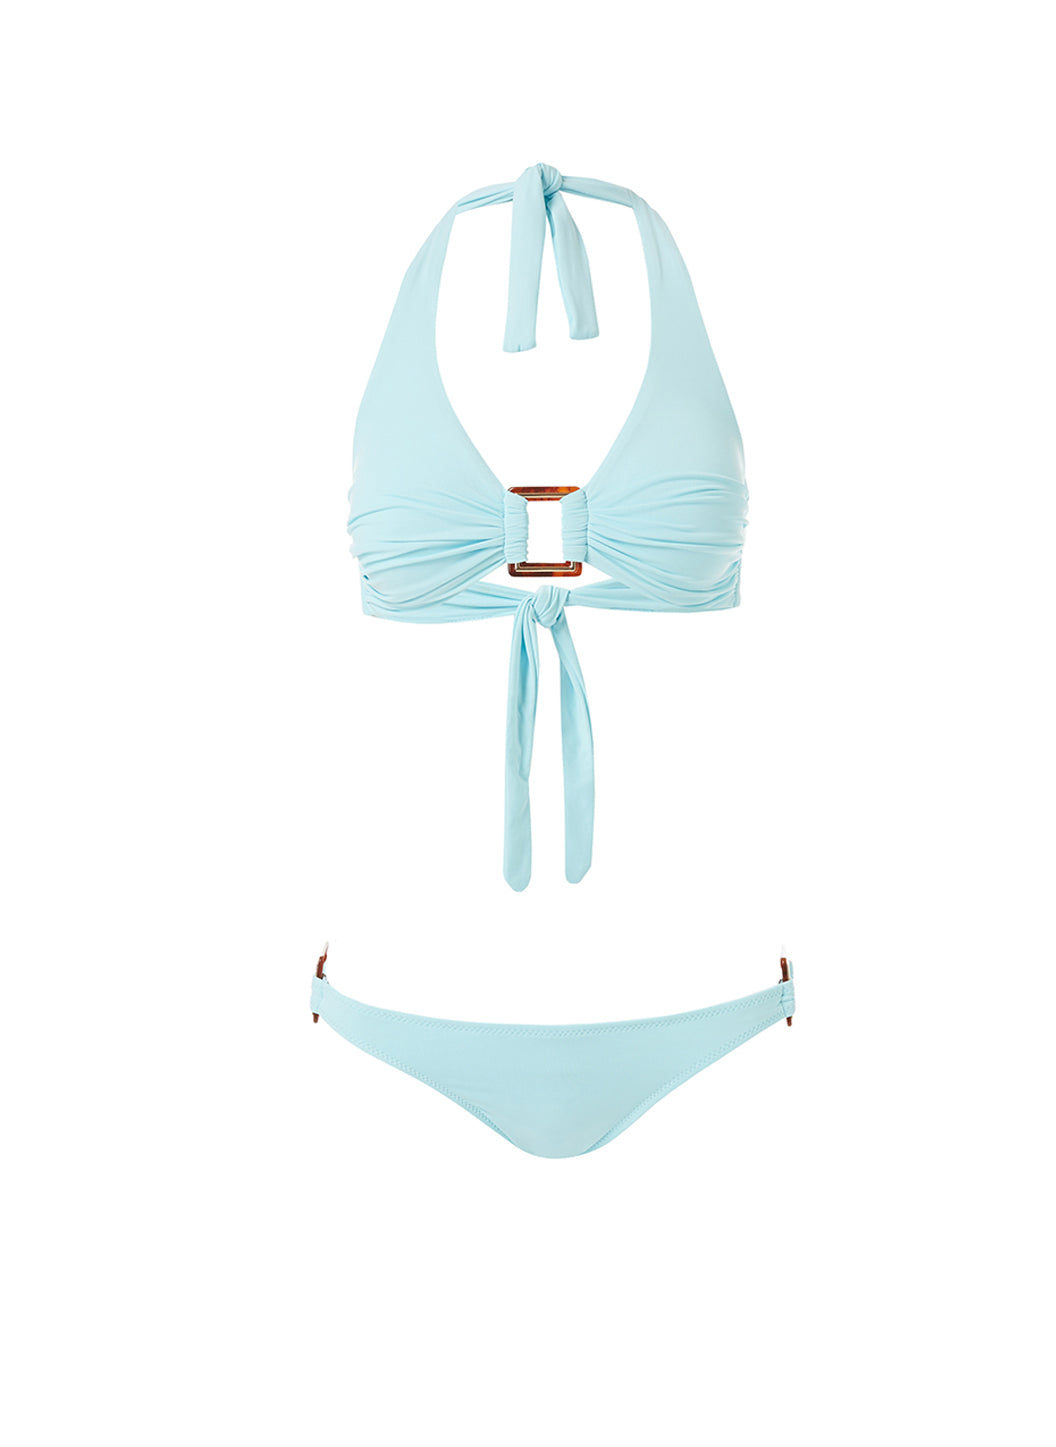 Paris Sky Halterneck Rectangle Trim Bikini - Melissa Odabash Swimwear